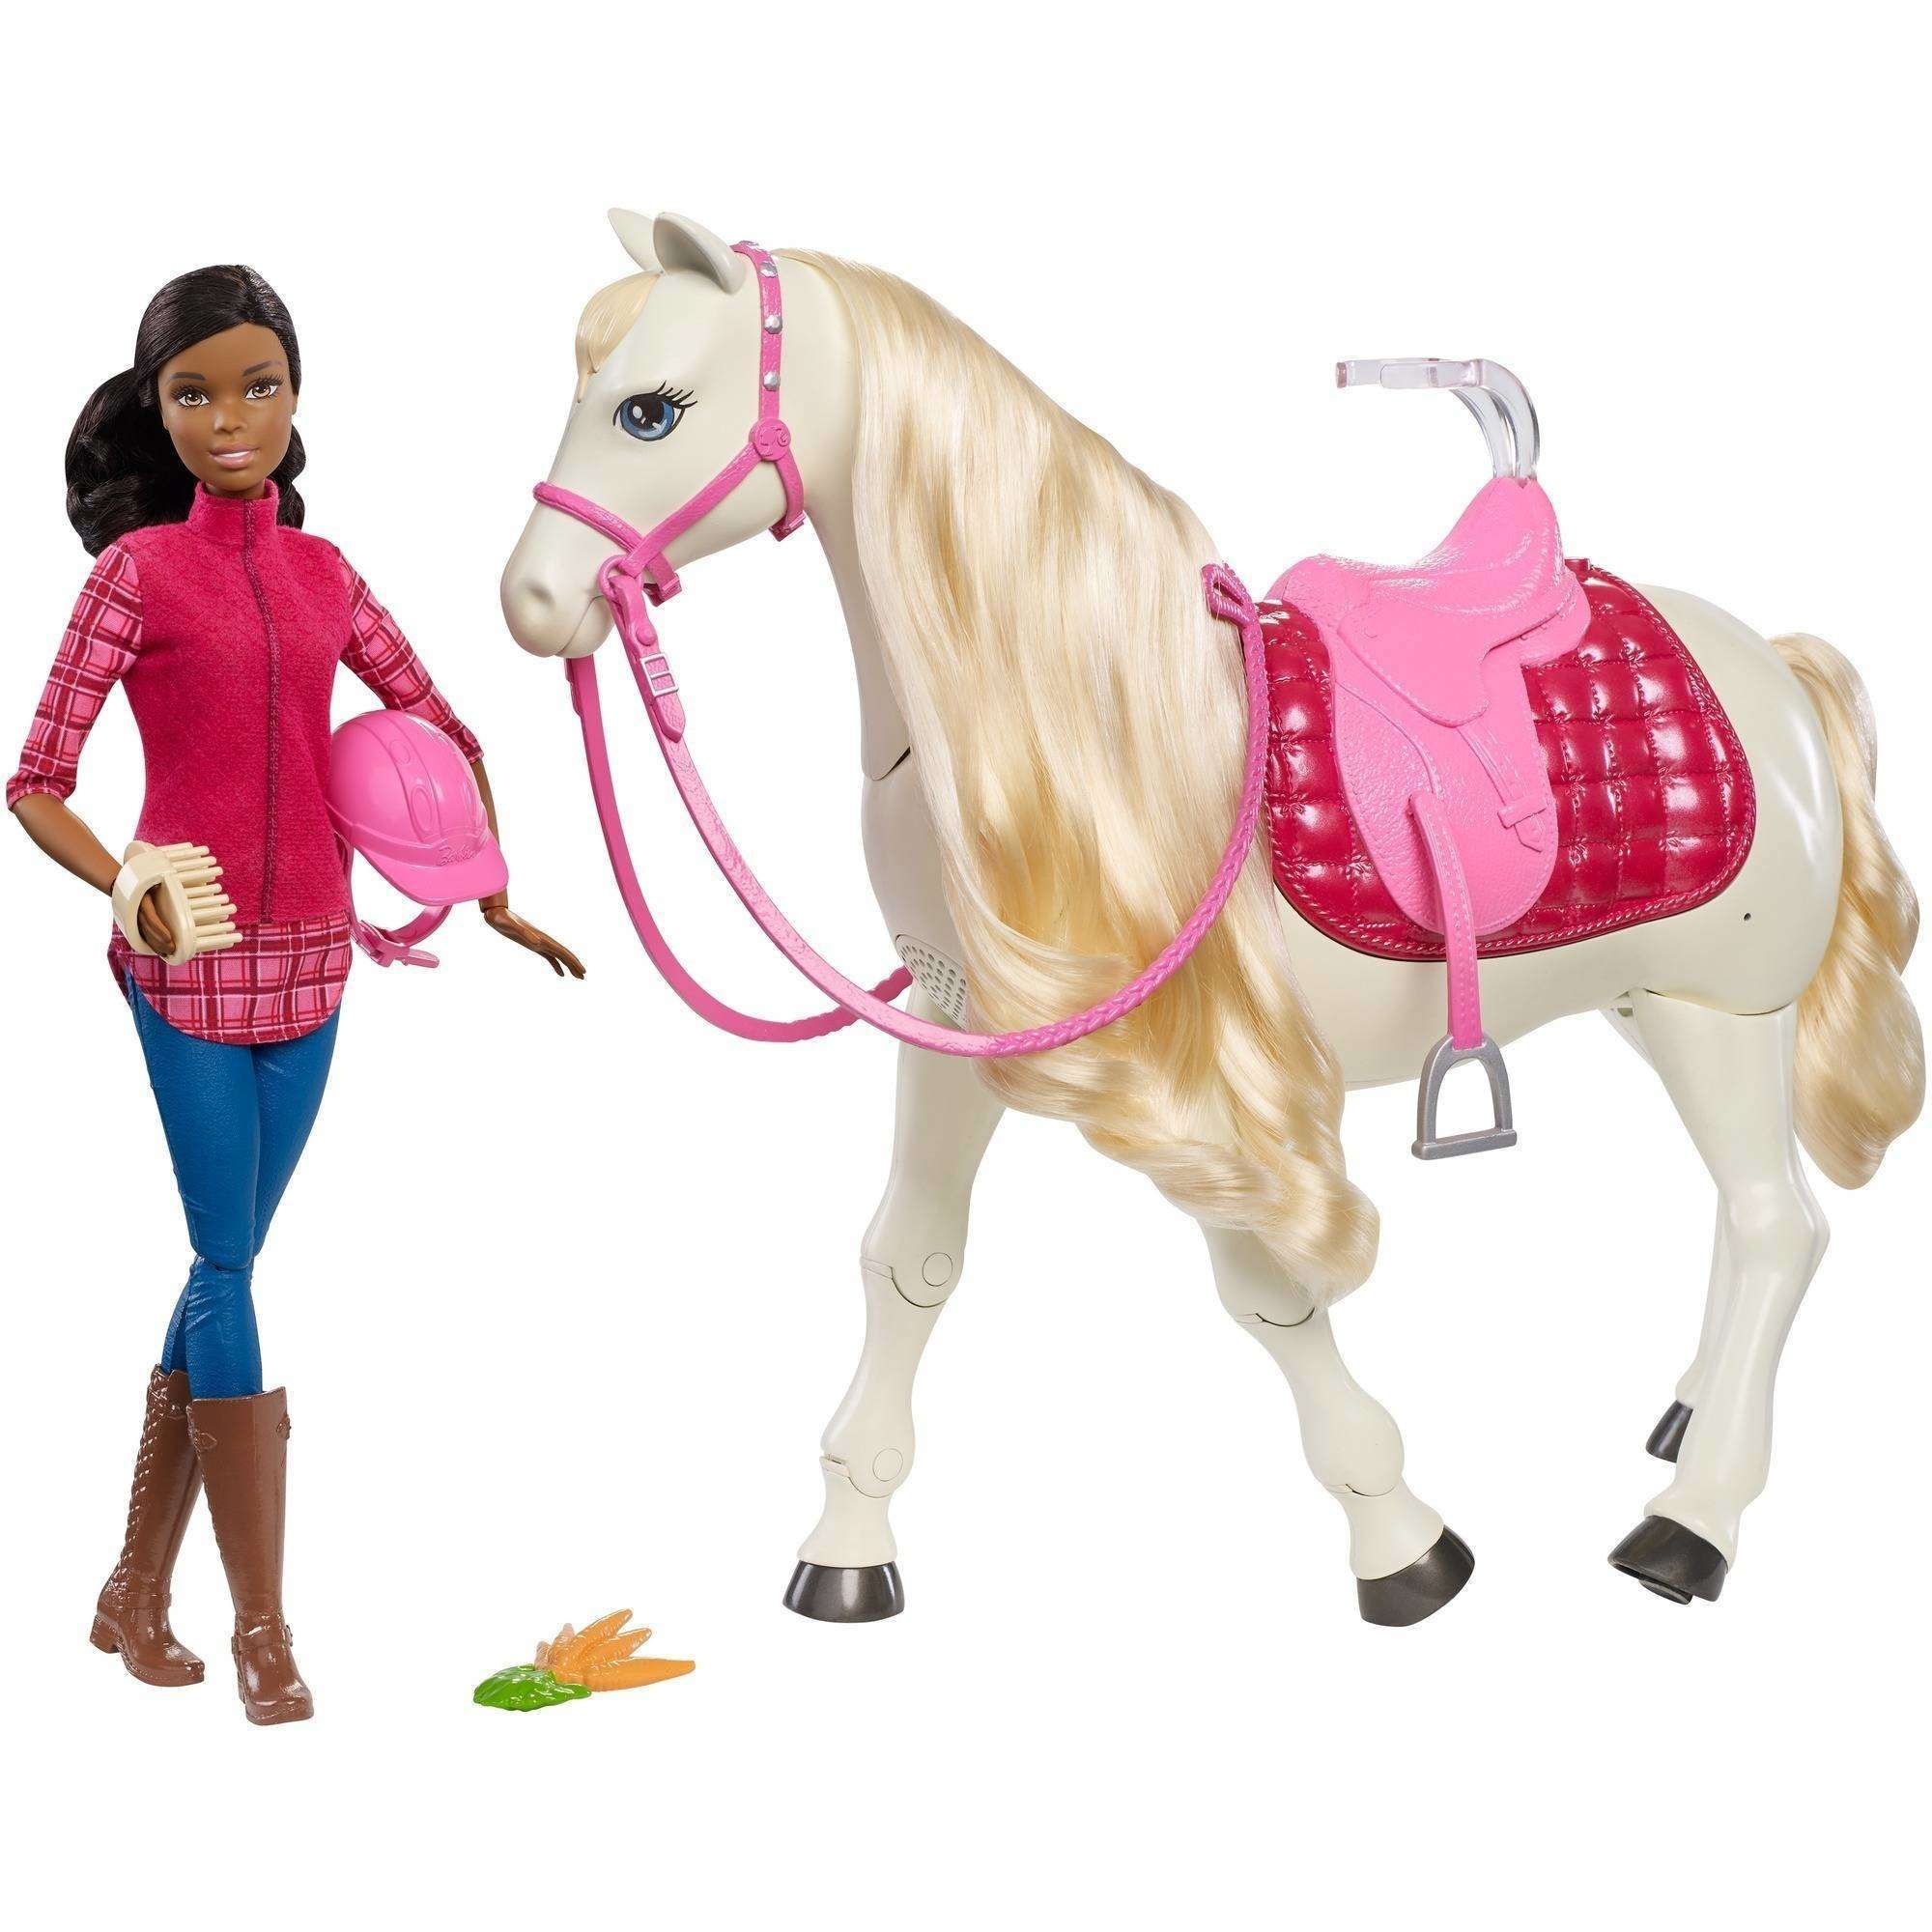 Barbie DreamHorse & Brunette Doll, Interactive Toy with 30+ Reactions